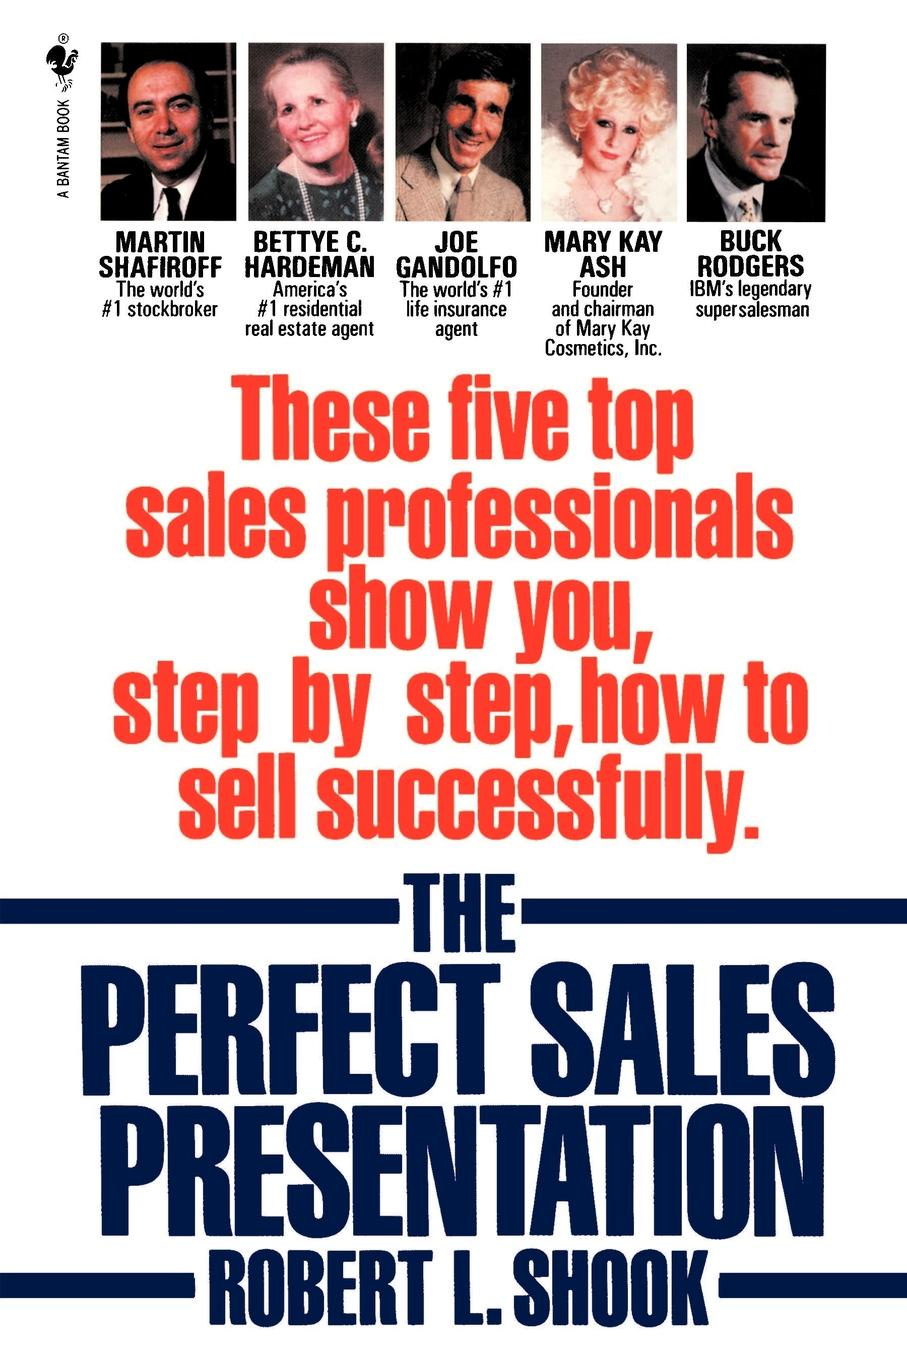 Robert L Shook The Perfect Sales Presentation These Five Top Sales Professionals Show You Step by Step How to Sell Successfully